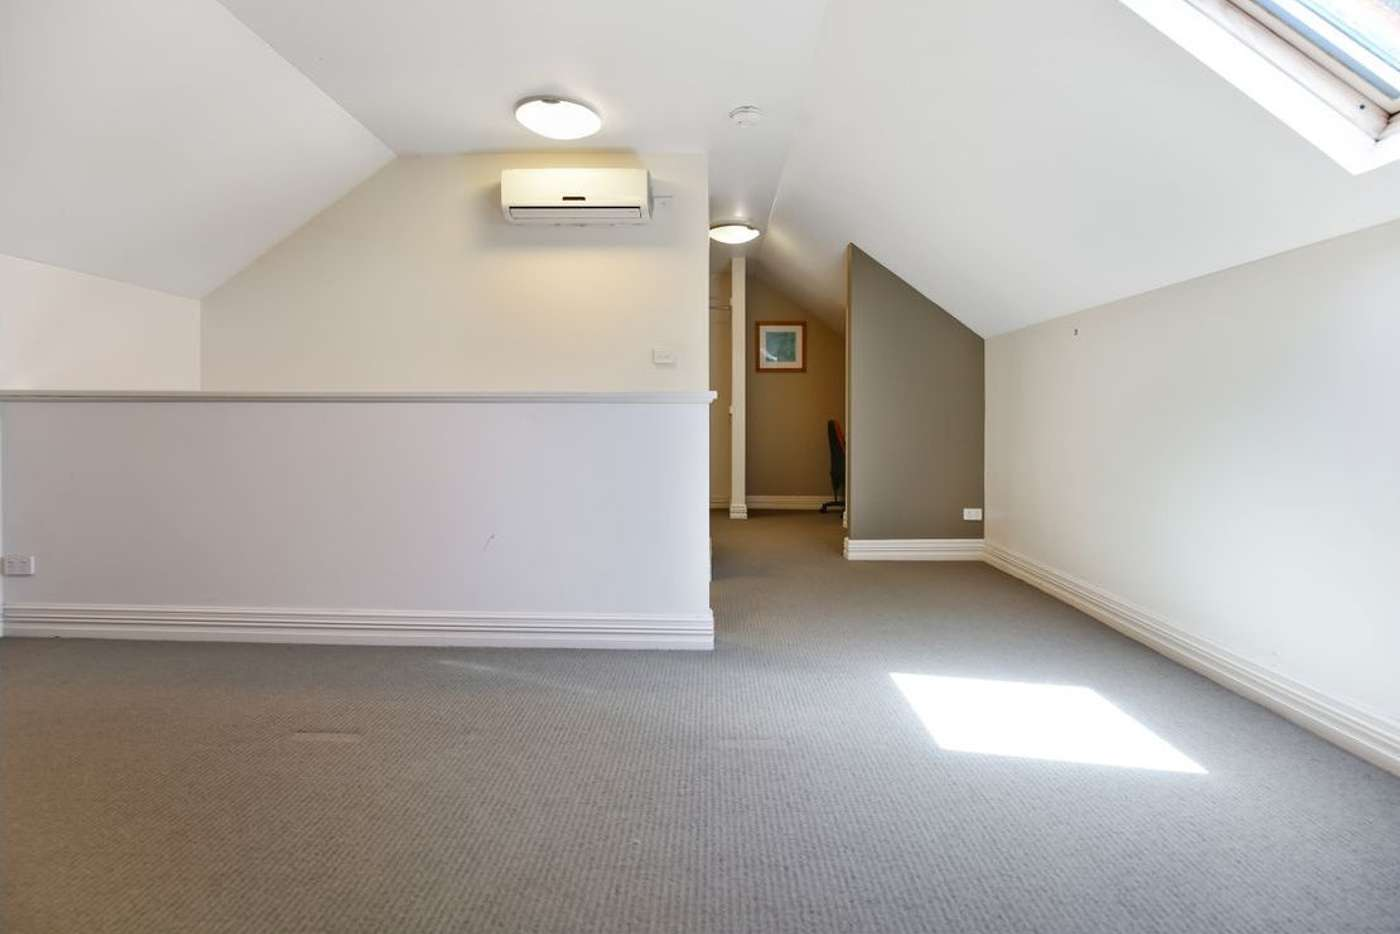 Sixth view of Homely townhouse listing, Unit 2/35A Mclachlan St, Orange NSW 2800